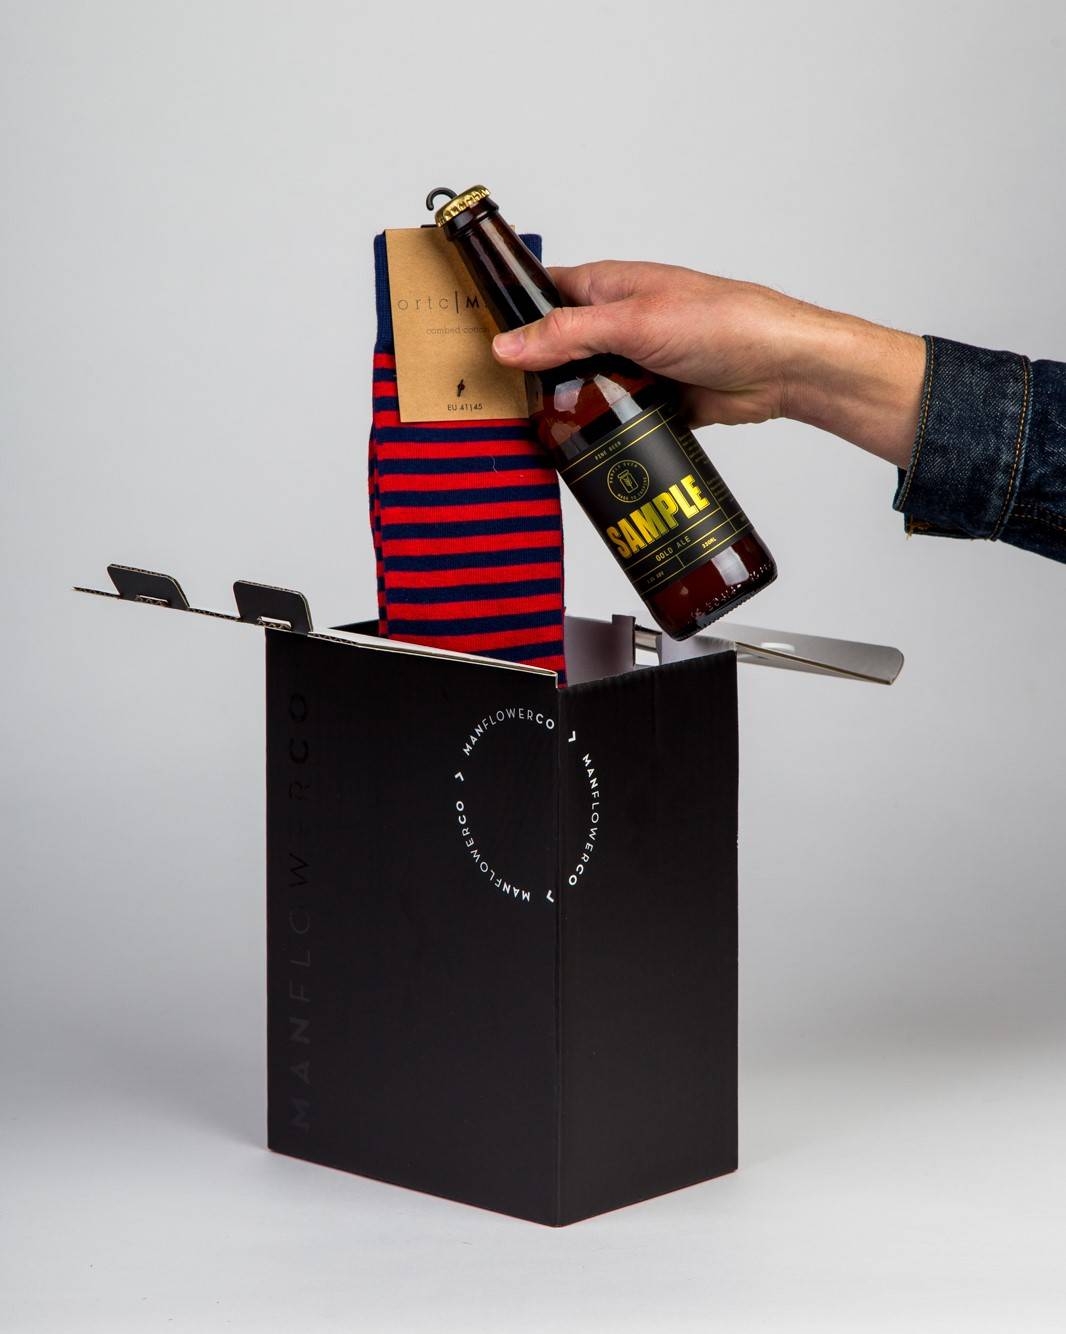 Sock Gift, part of Manflower Co's range of holiday gifts for men.